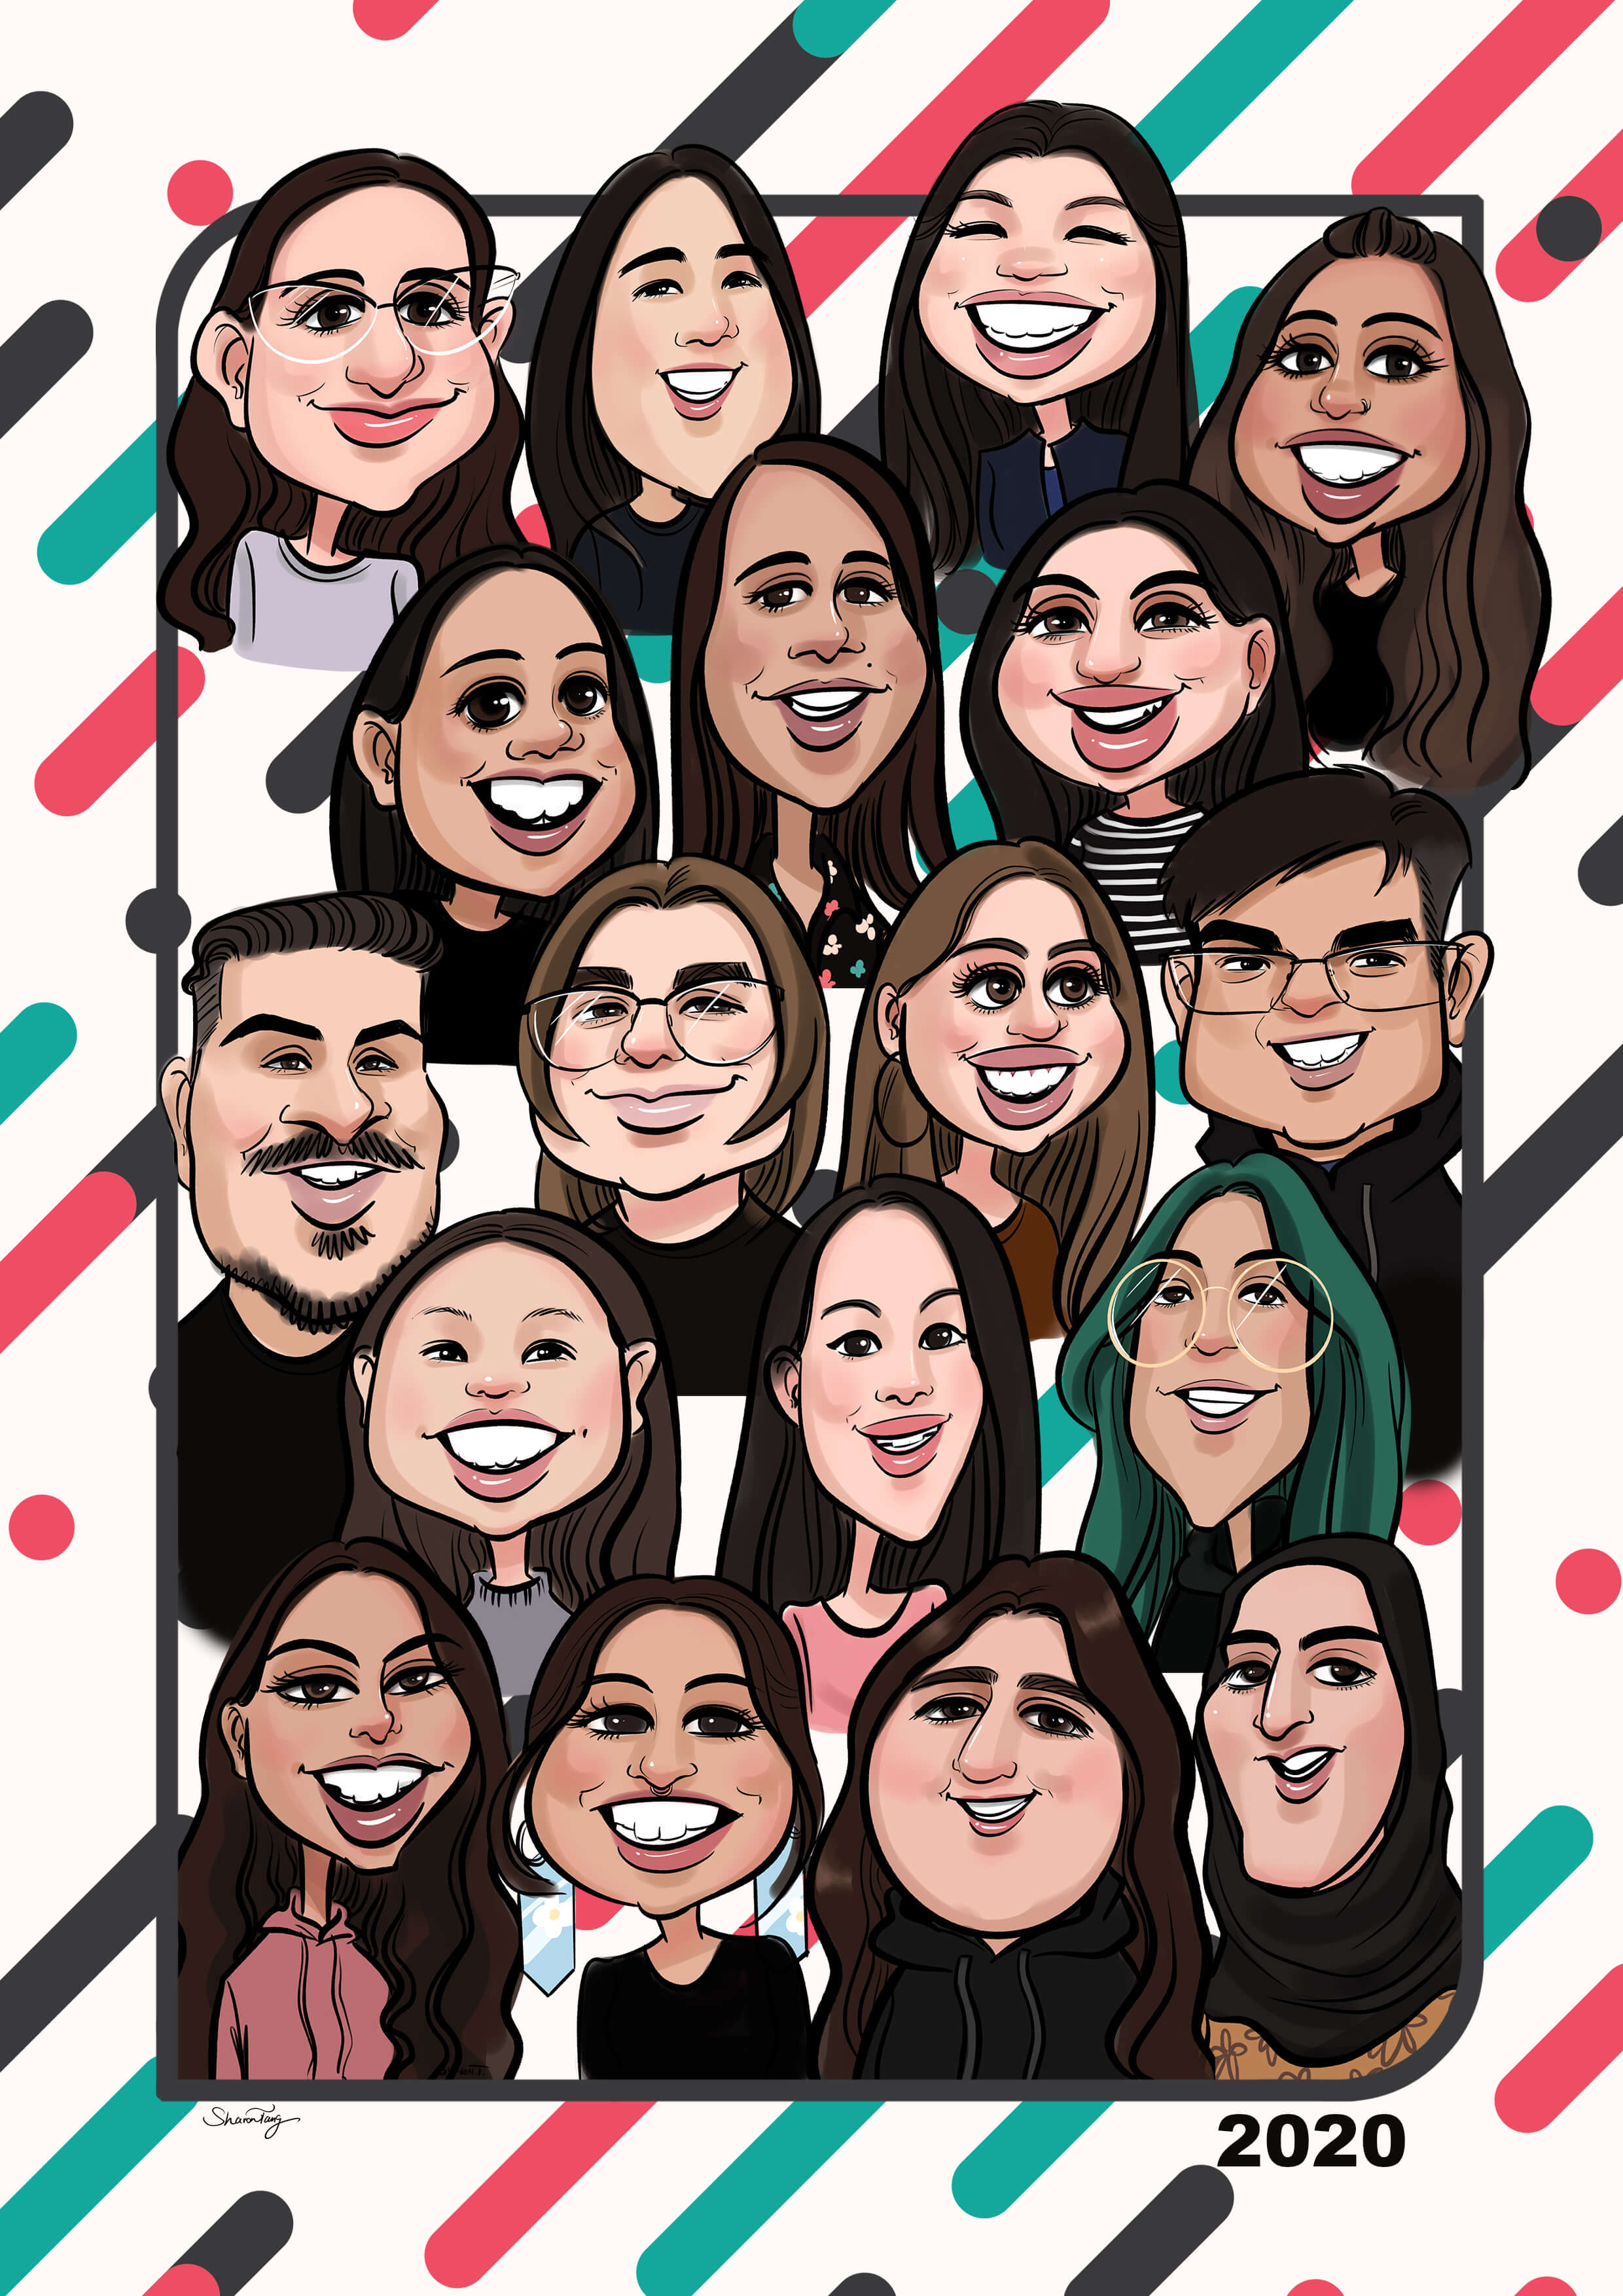 group caricature for farewell party